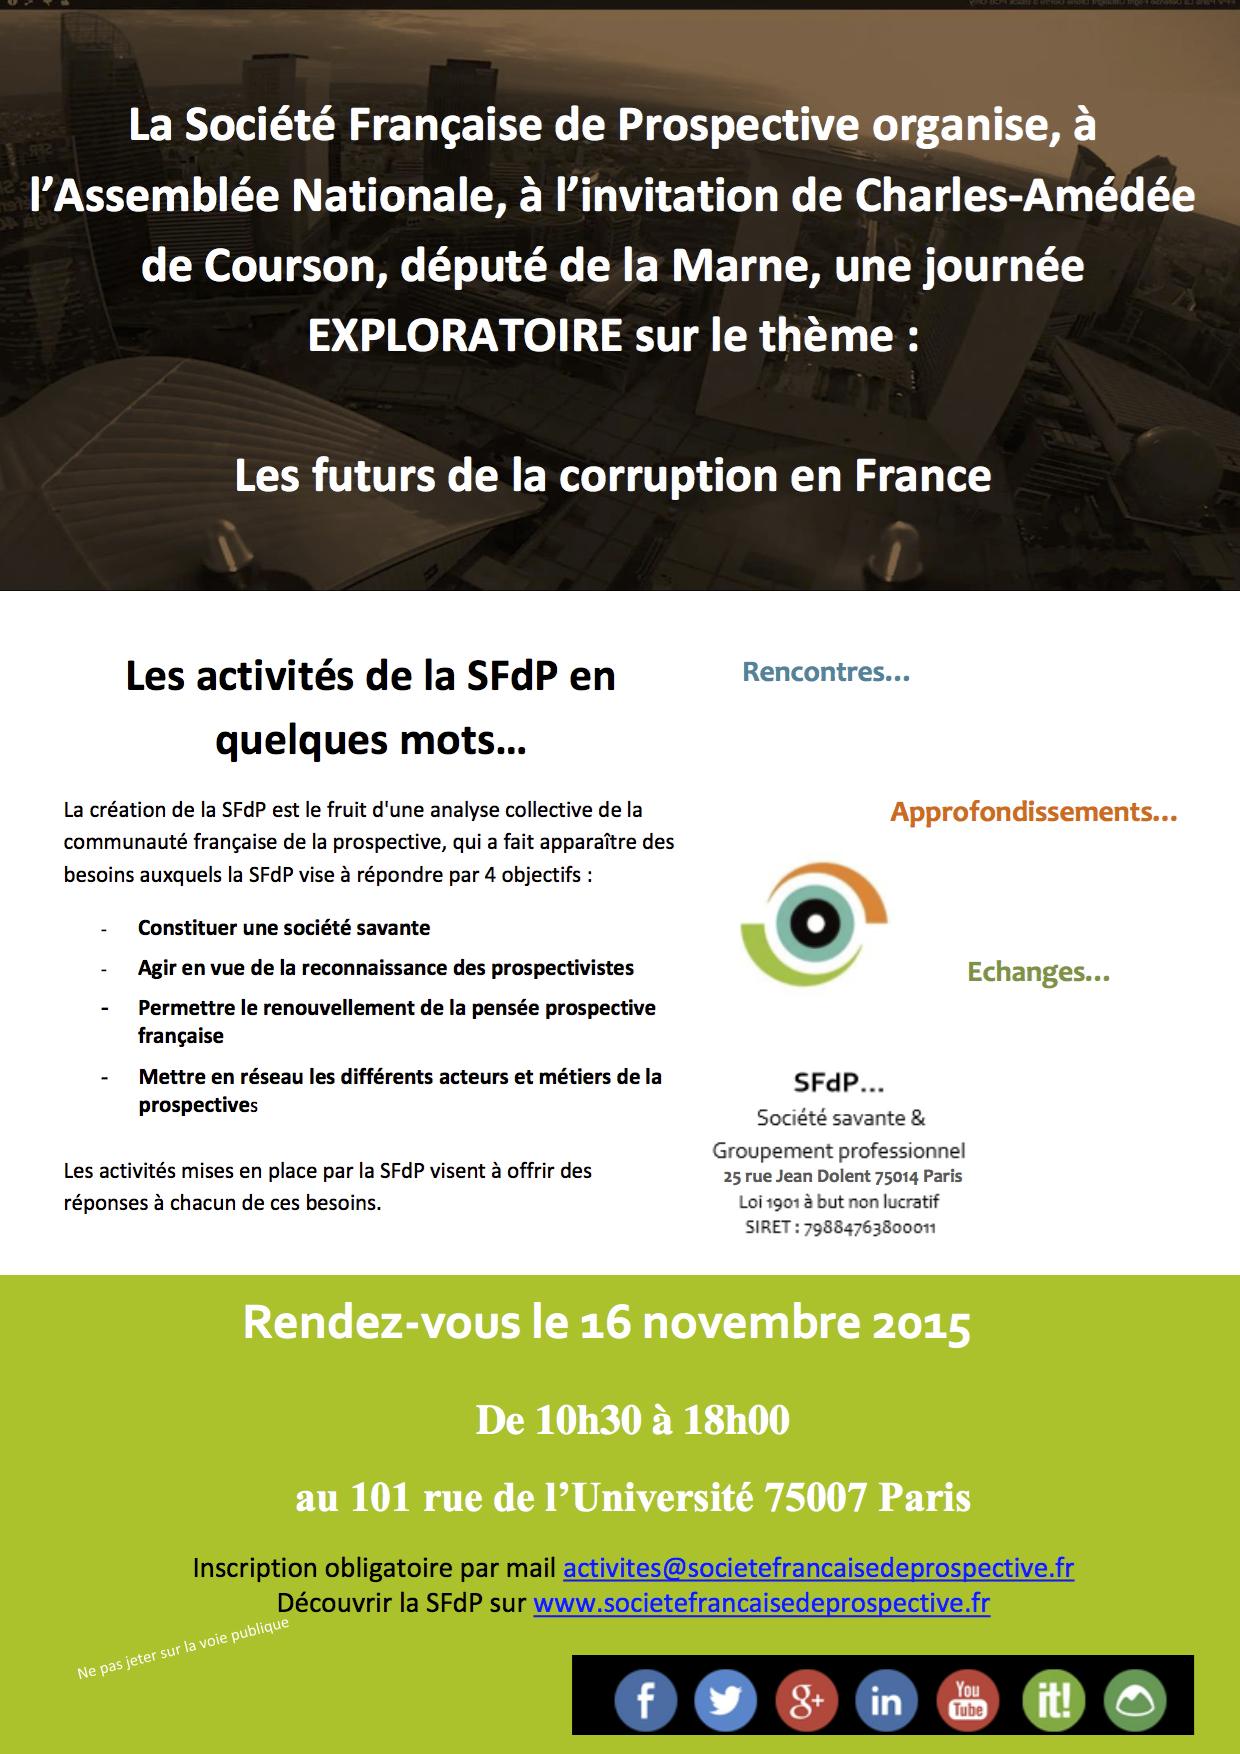 Flyer SFP_ J exploratoire_corruption